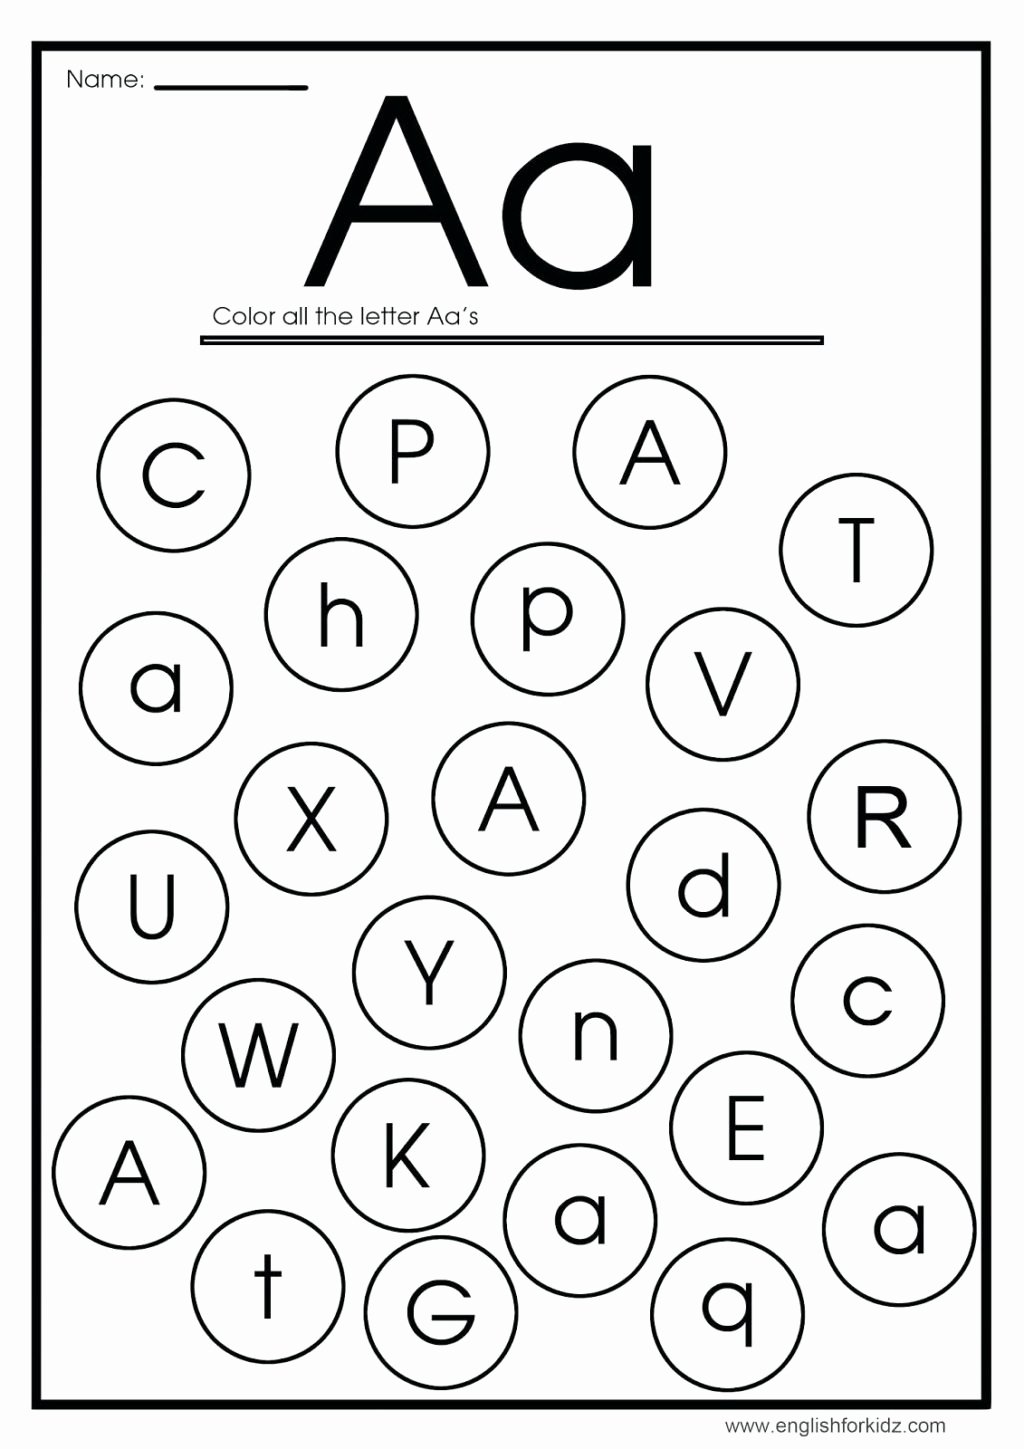 Letter Aa Worksheets for Preschoolers Lovely Worksheet the Alphabet Worksheets for Kindergarten English